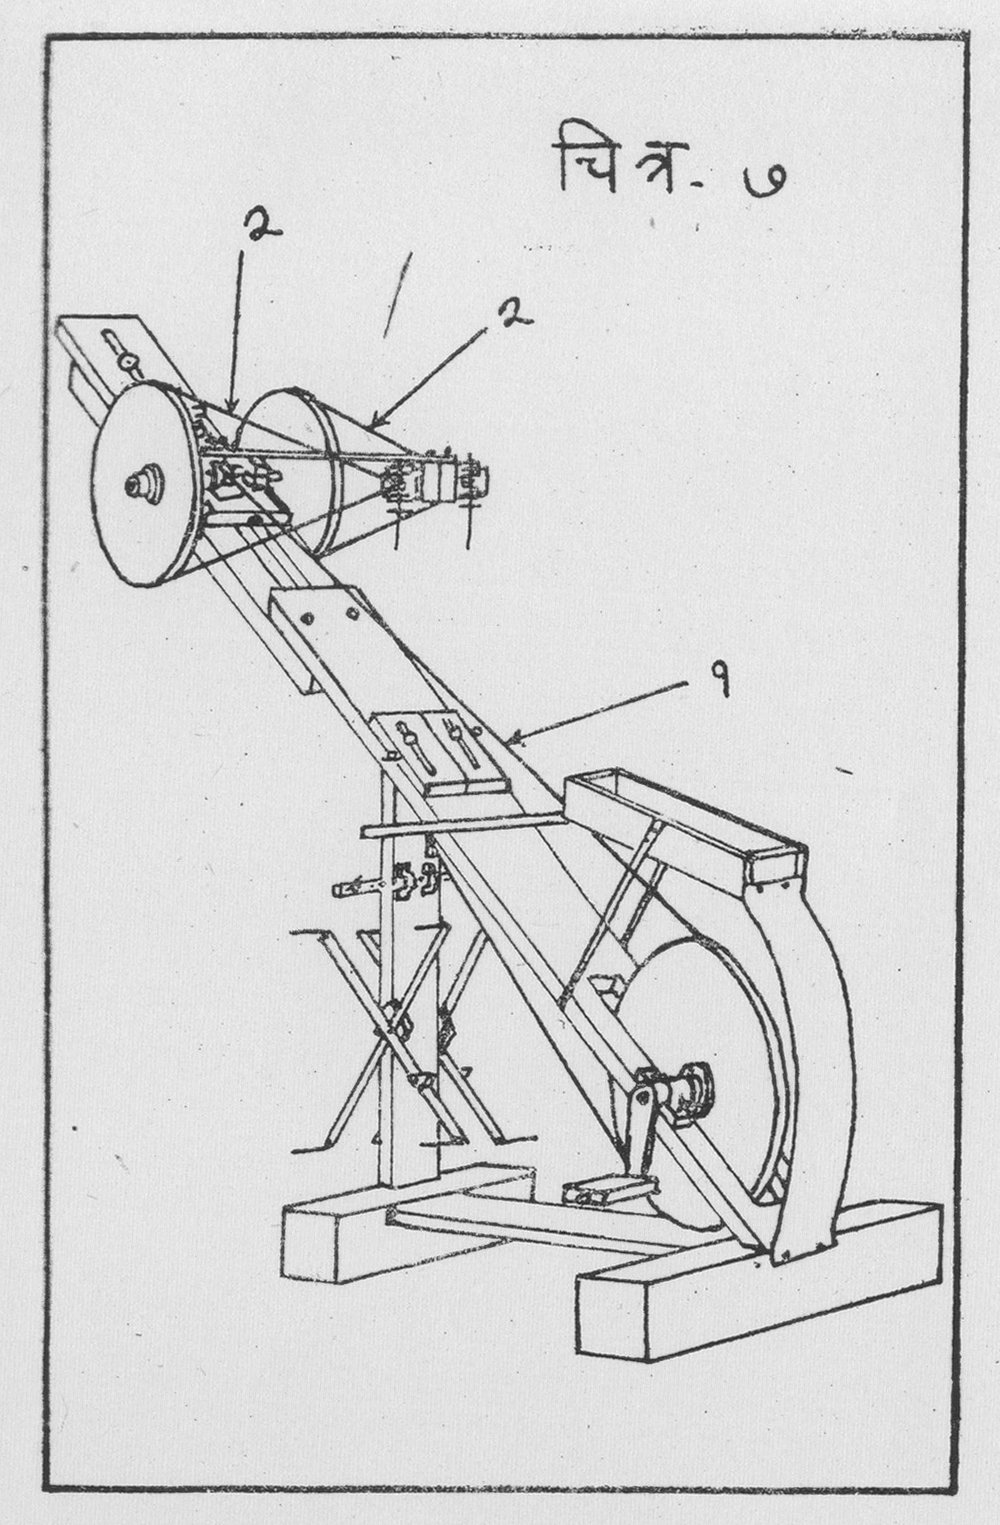 The Magan charkha design reconfigured and equipped with pedals modeled after those of the bicycle.